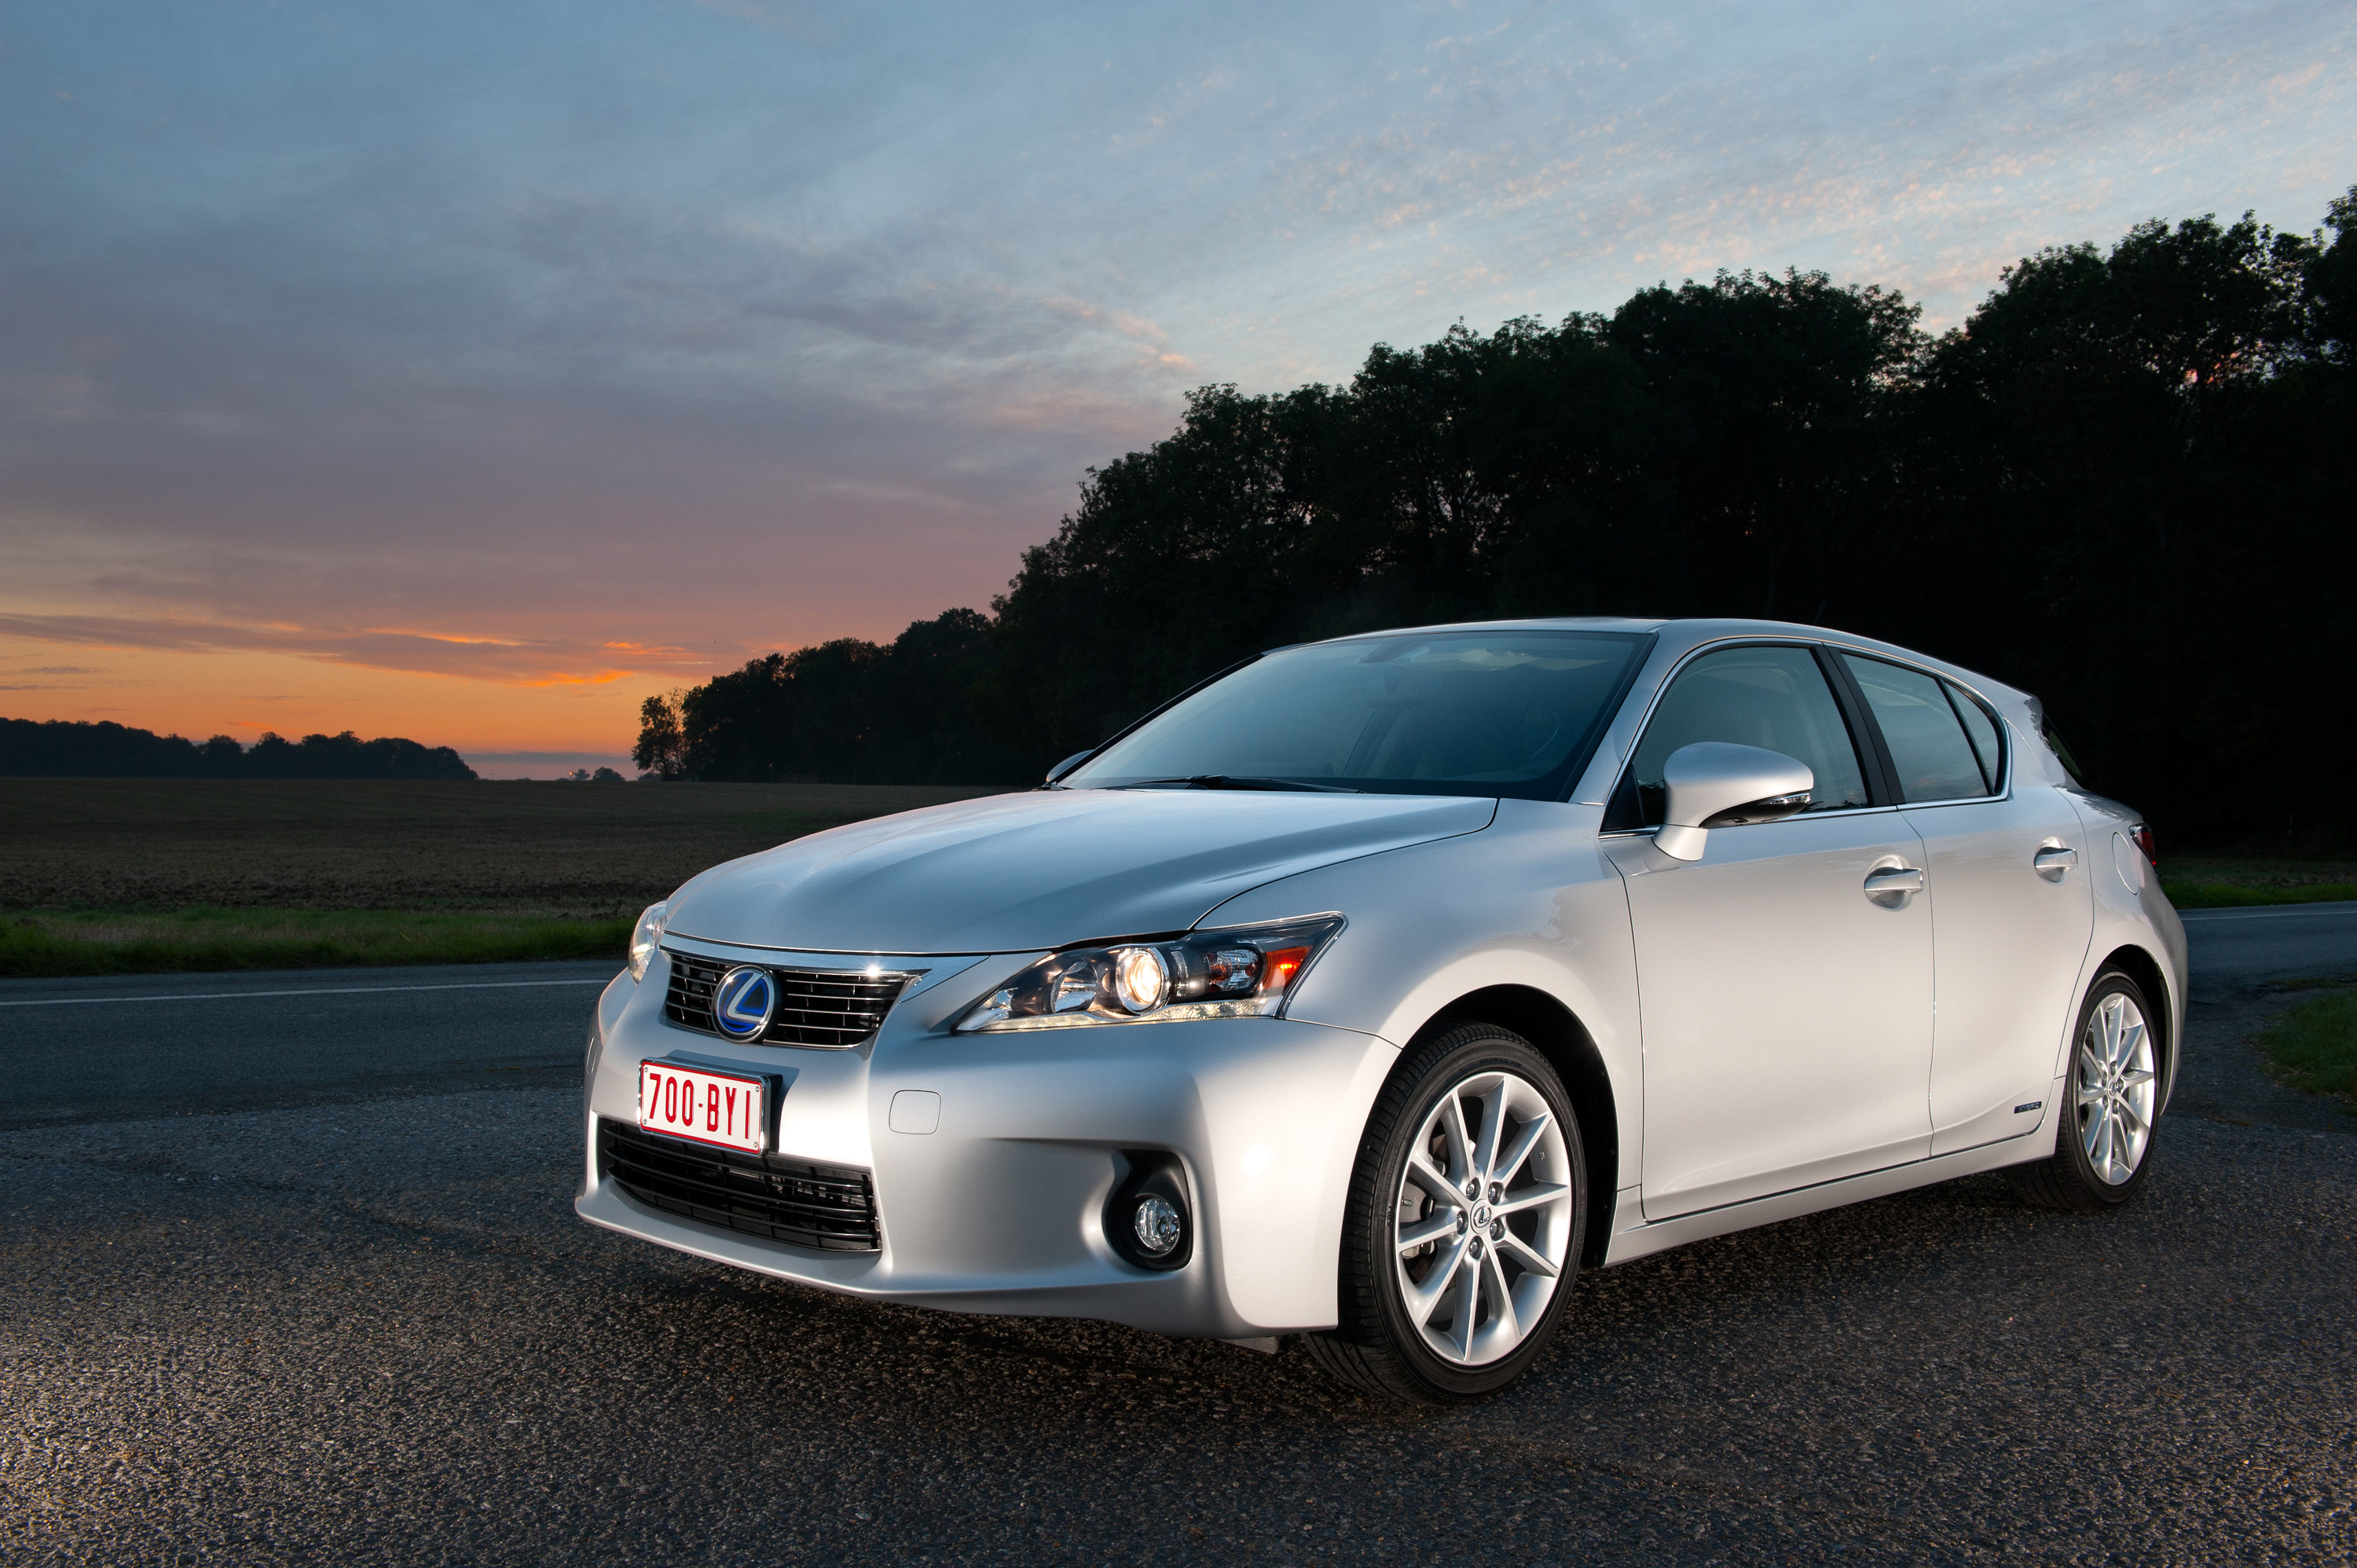 2013 Lexus CT 200h pact Hybrid If It Ain t Broke